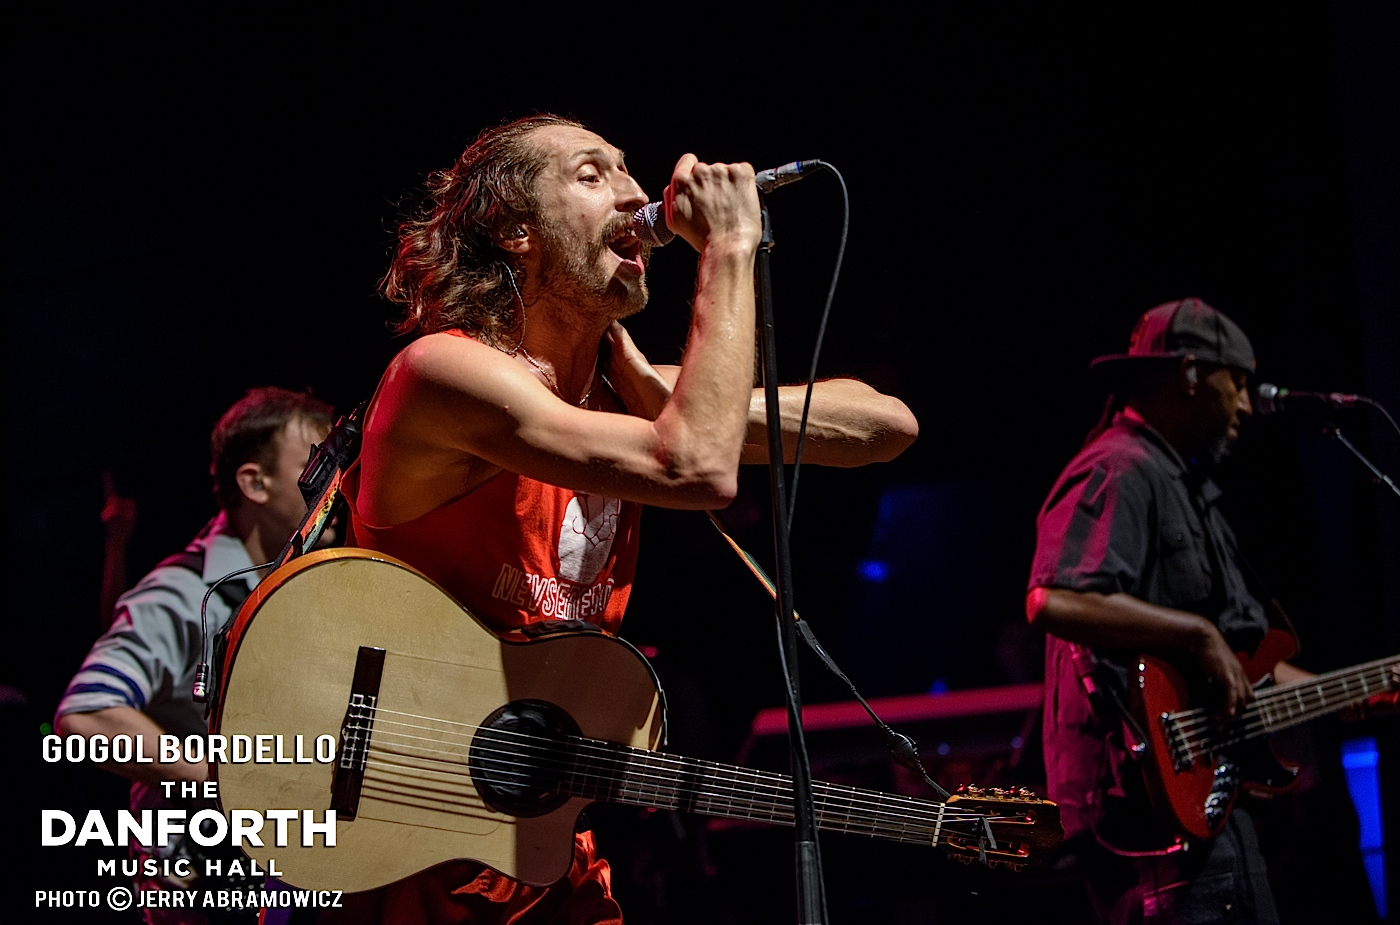 GOGOL BORDELLO plays to a packed house at The Danforth Music Hall Toronto.